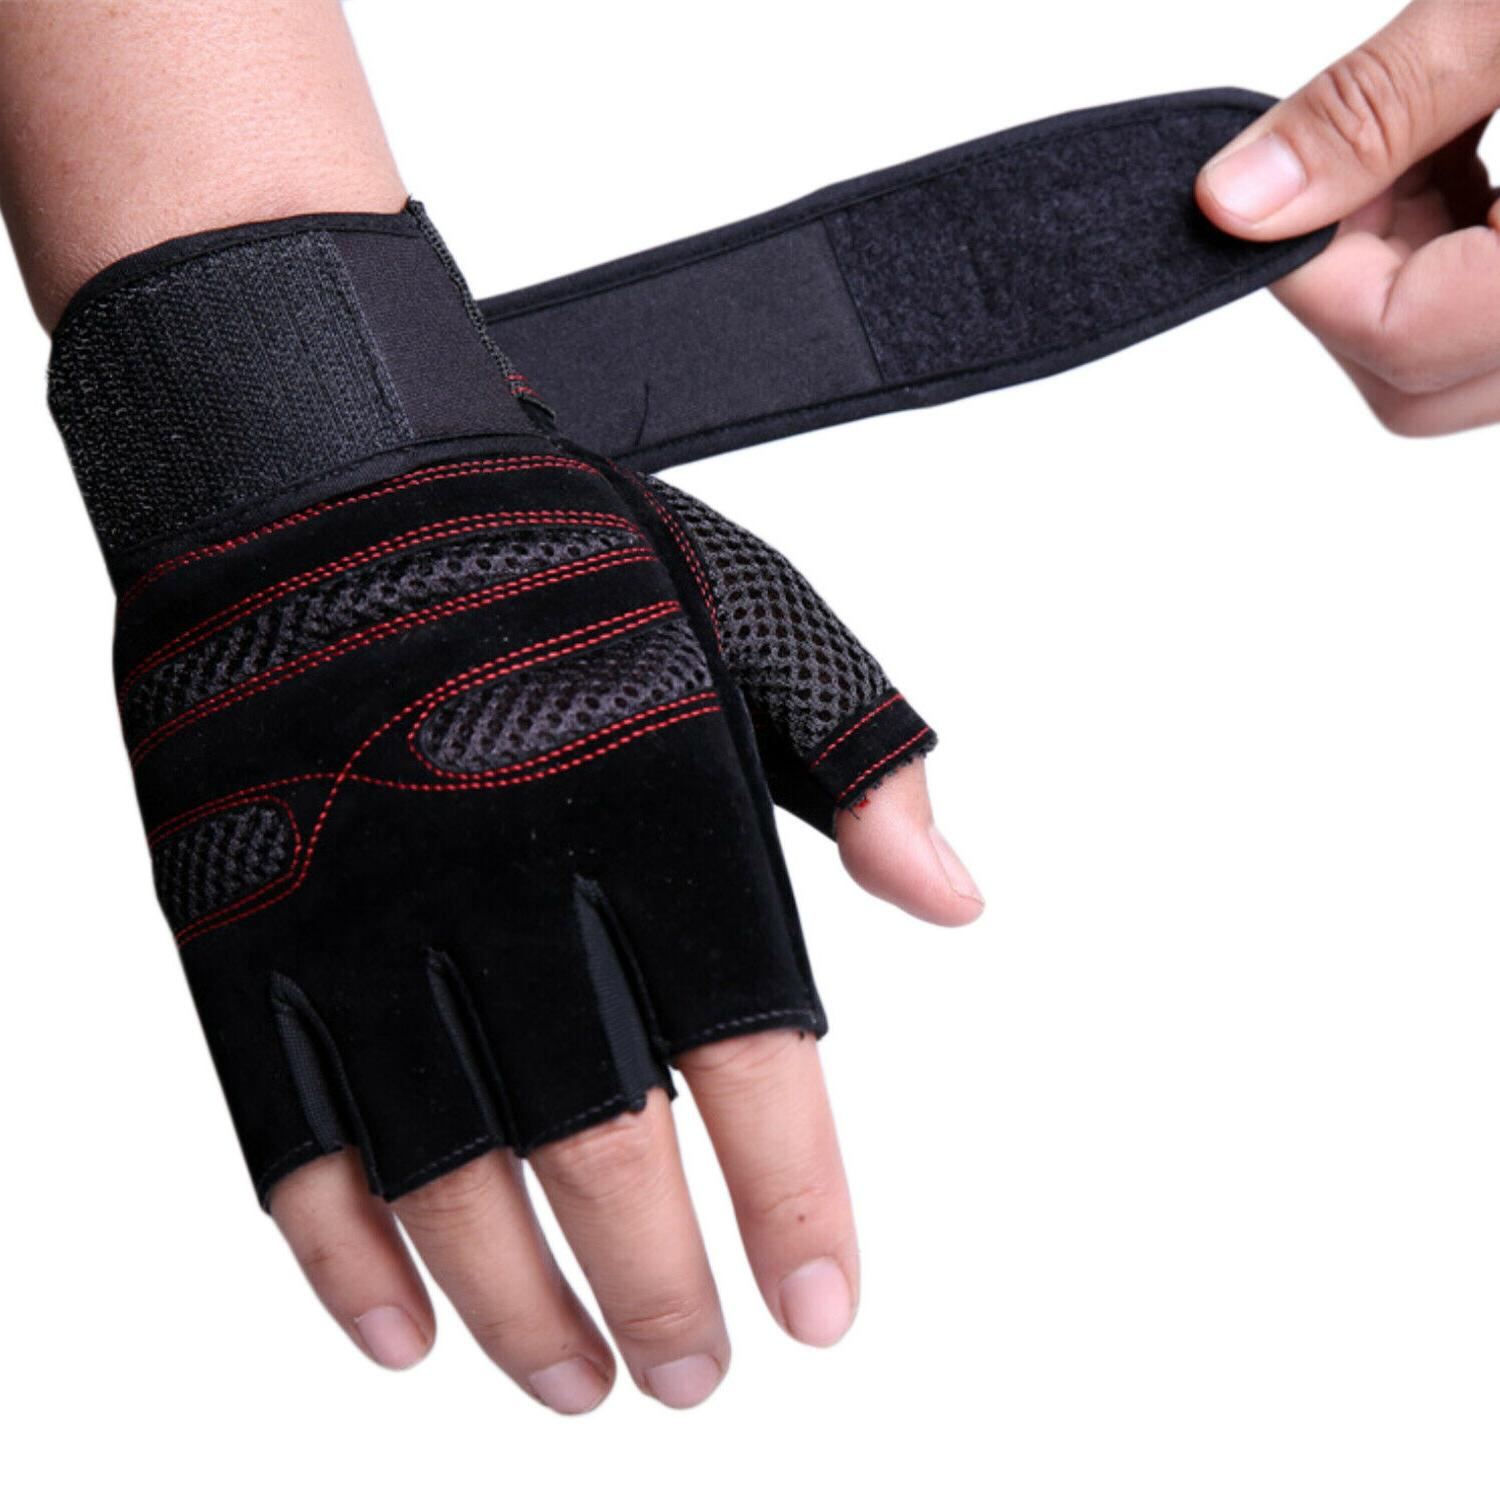 Wrist Fitness Workout Exercise Weightlifting Gym Gloves